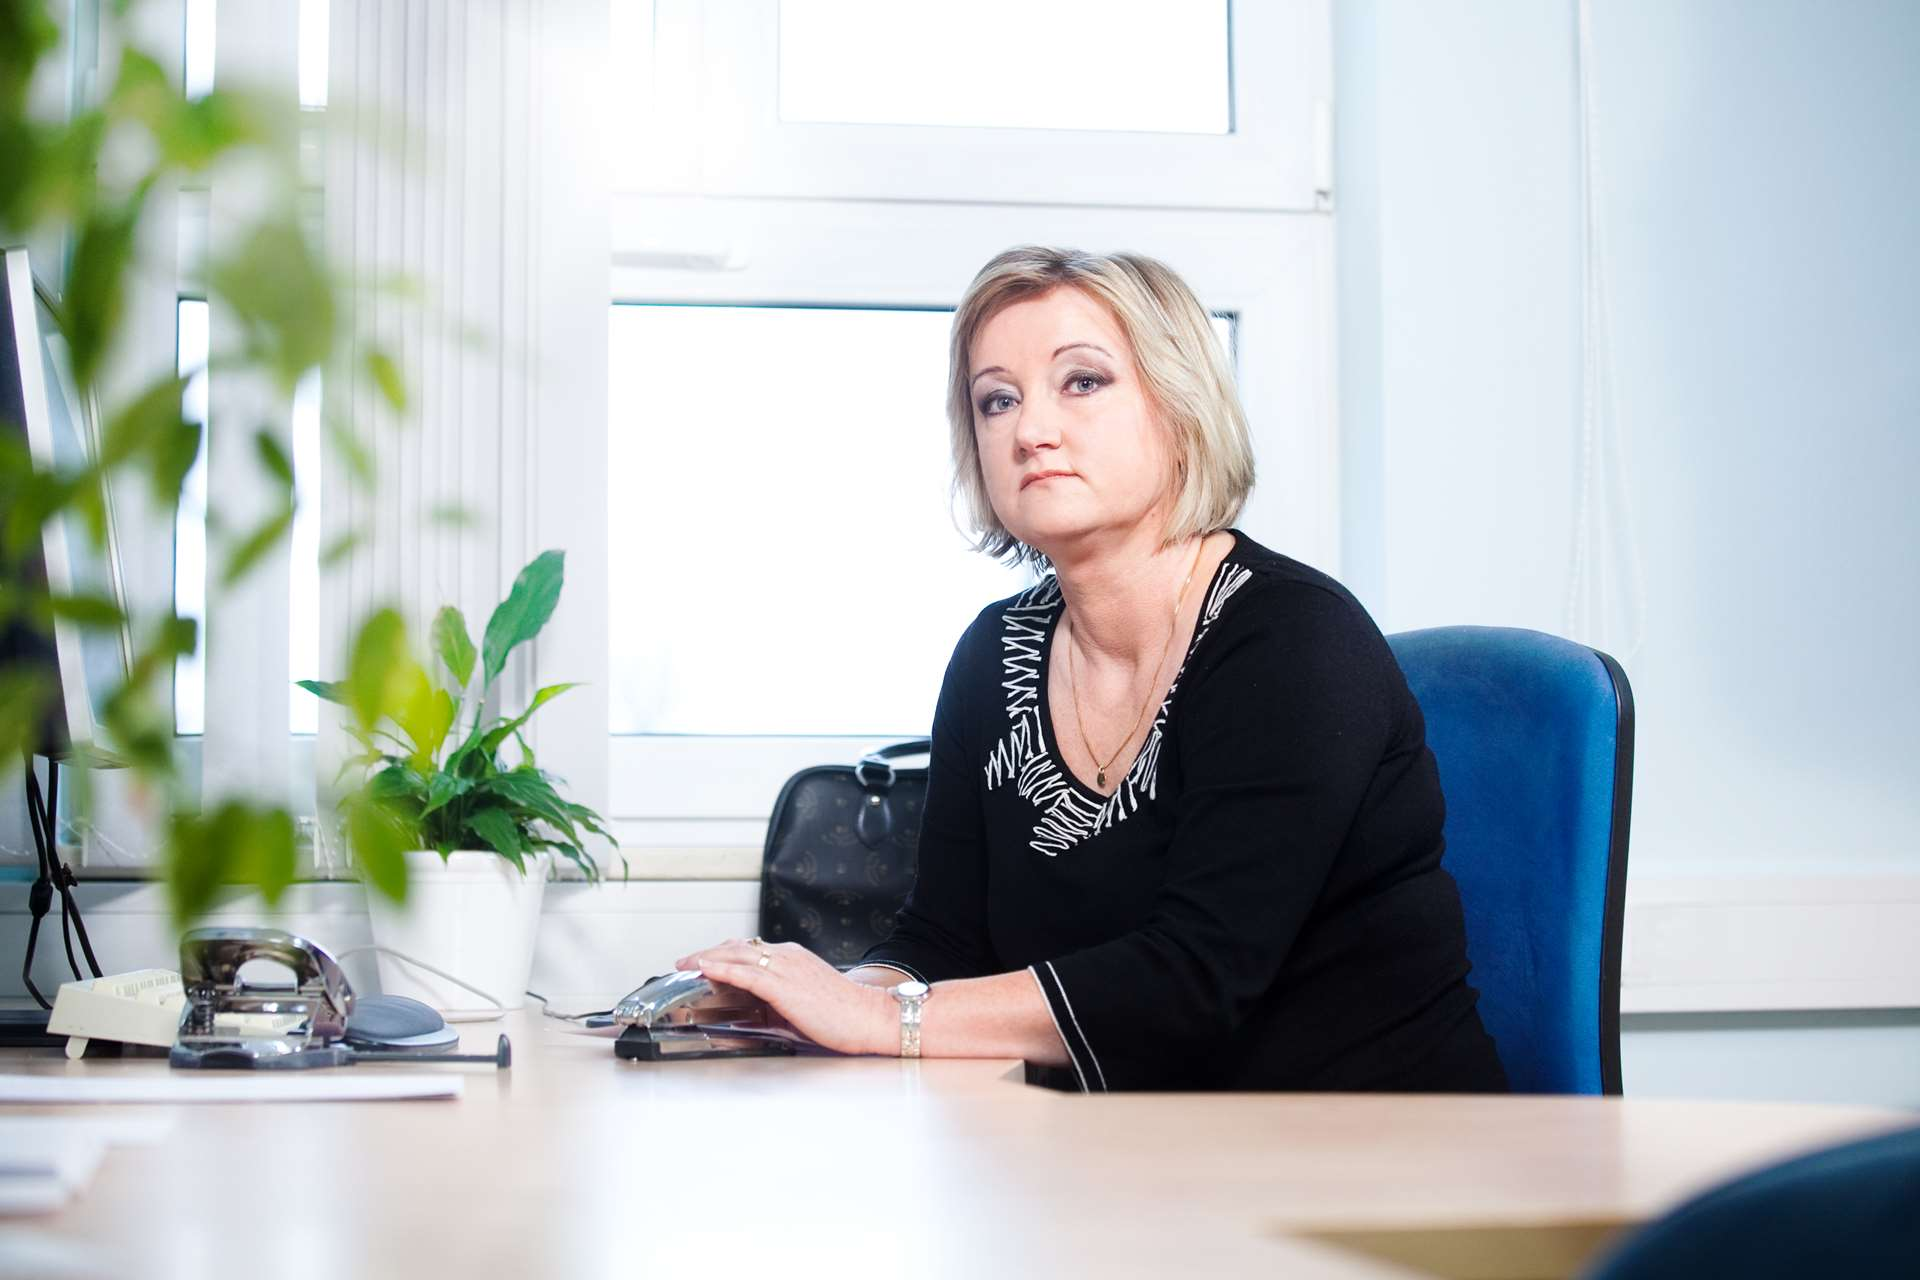 Jana Císlerová, Accounting Manager